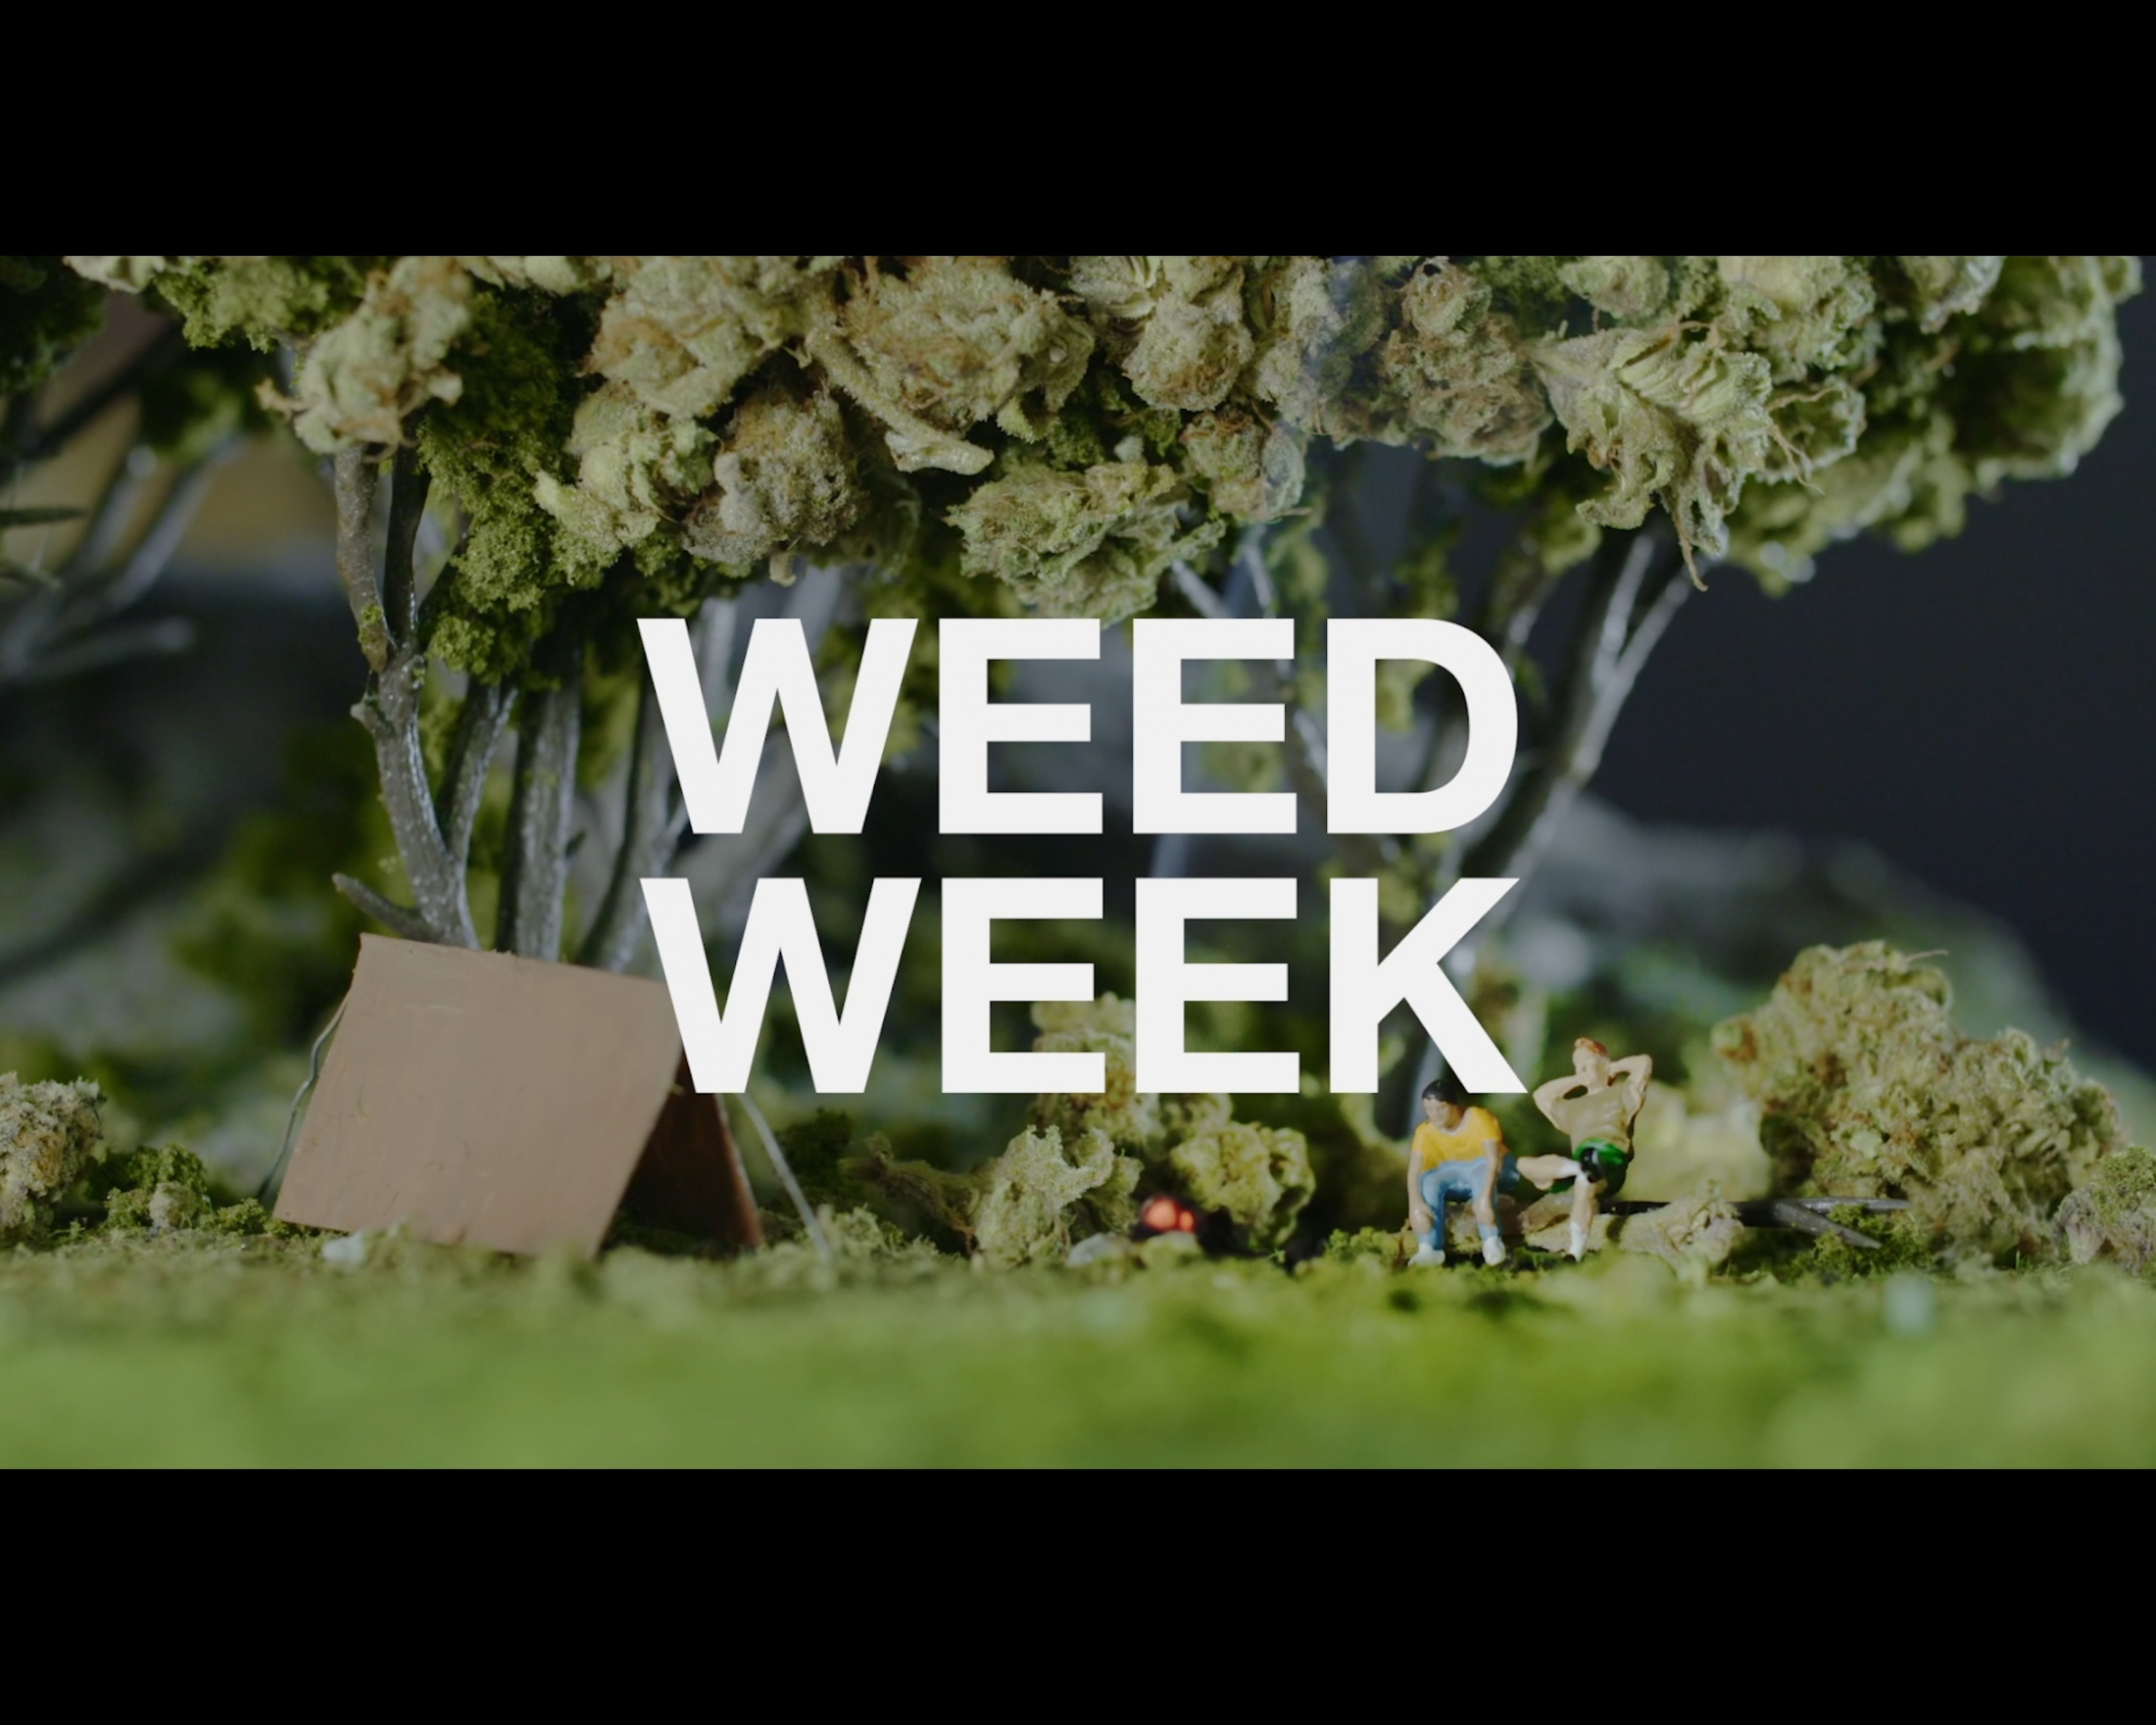 Thumbnail for Weed Week